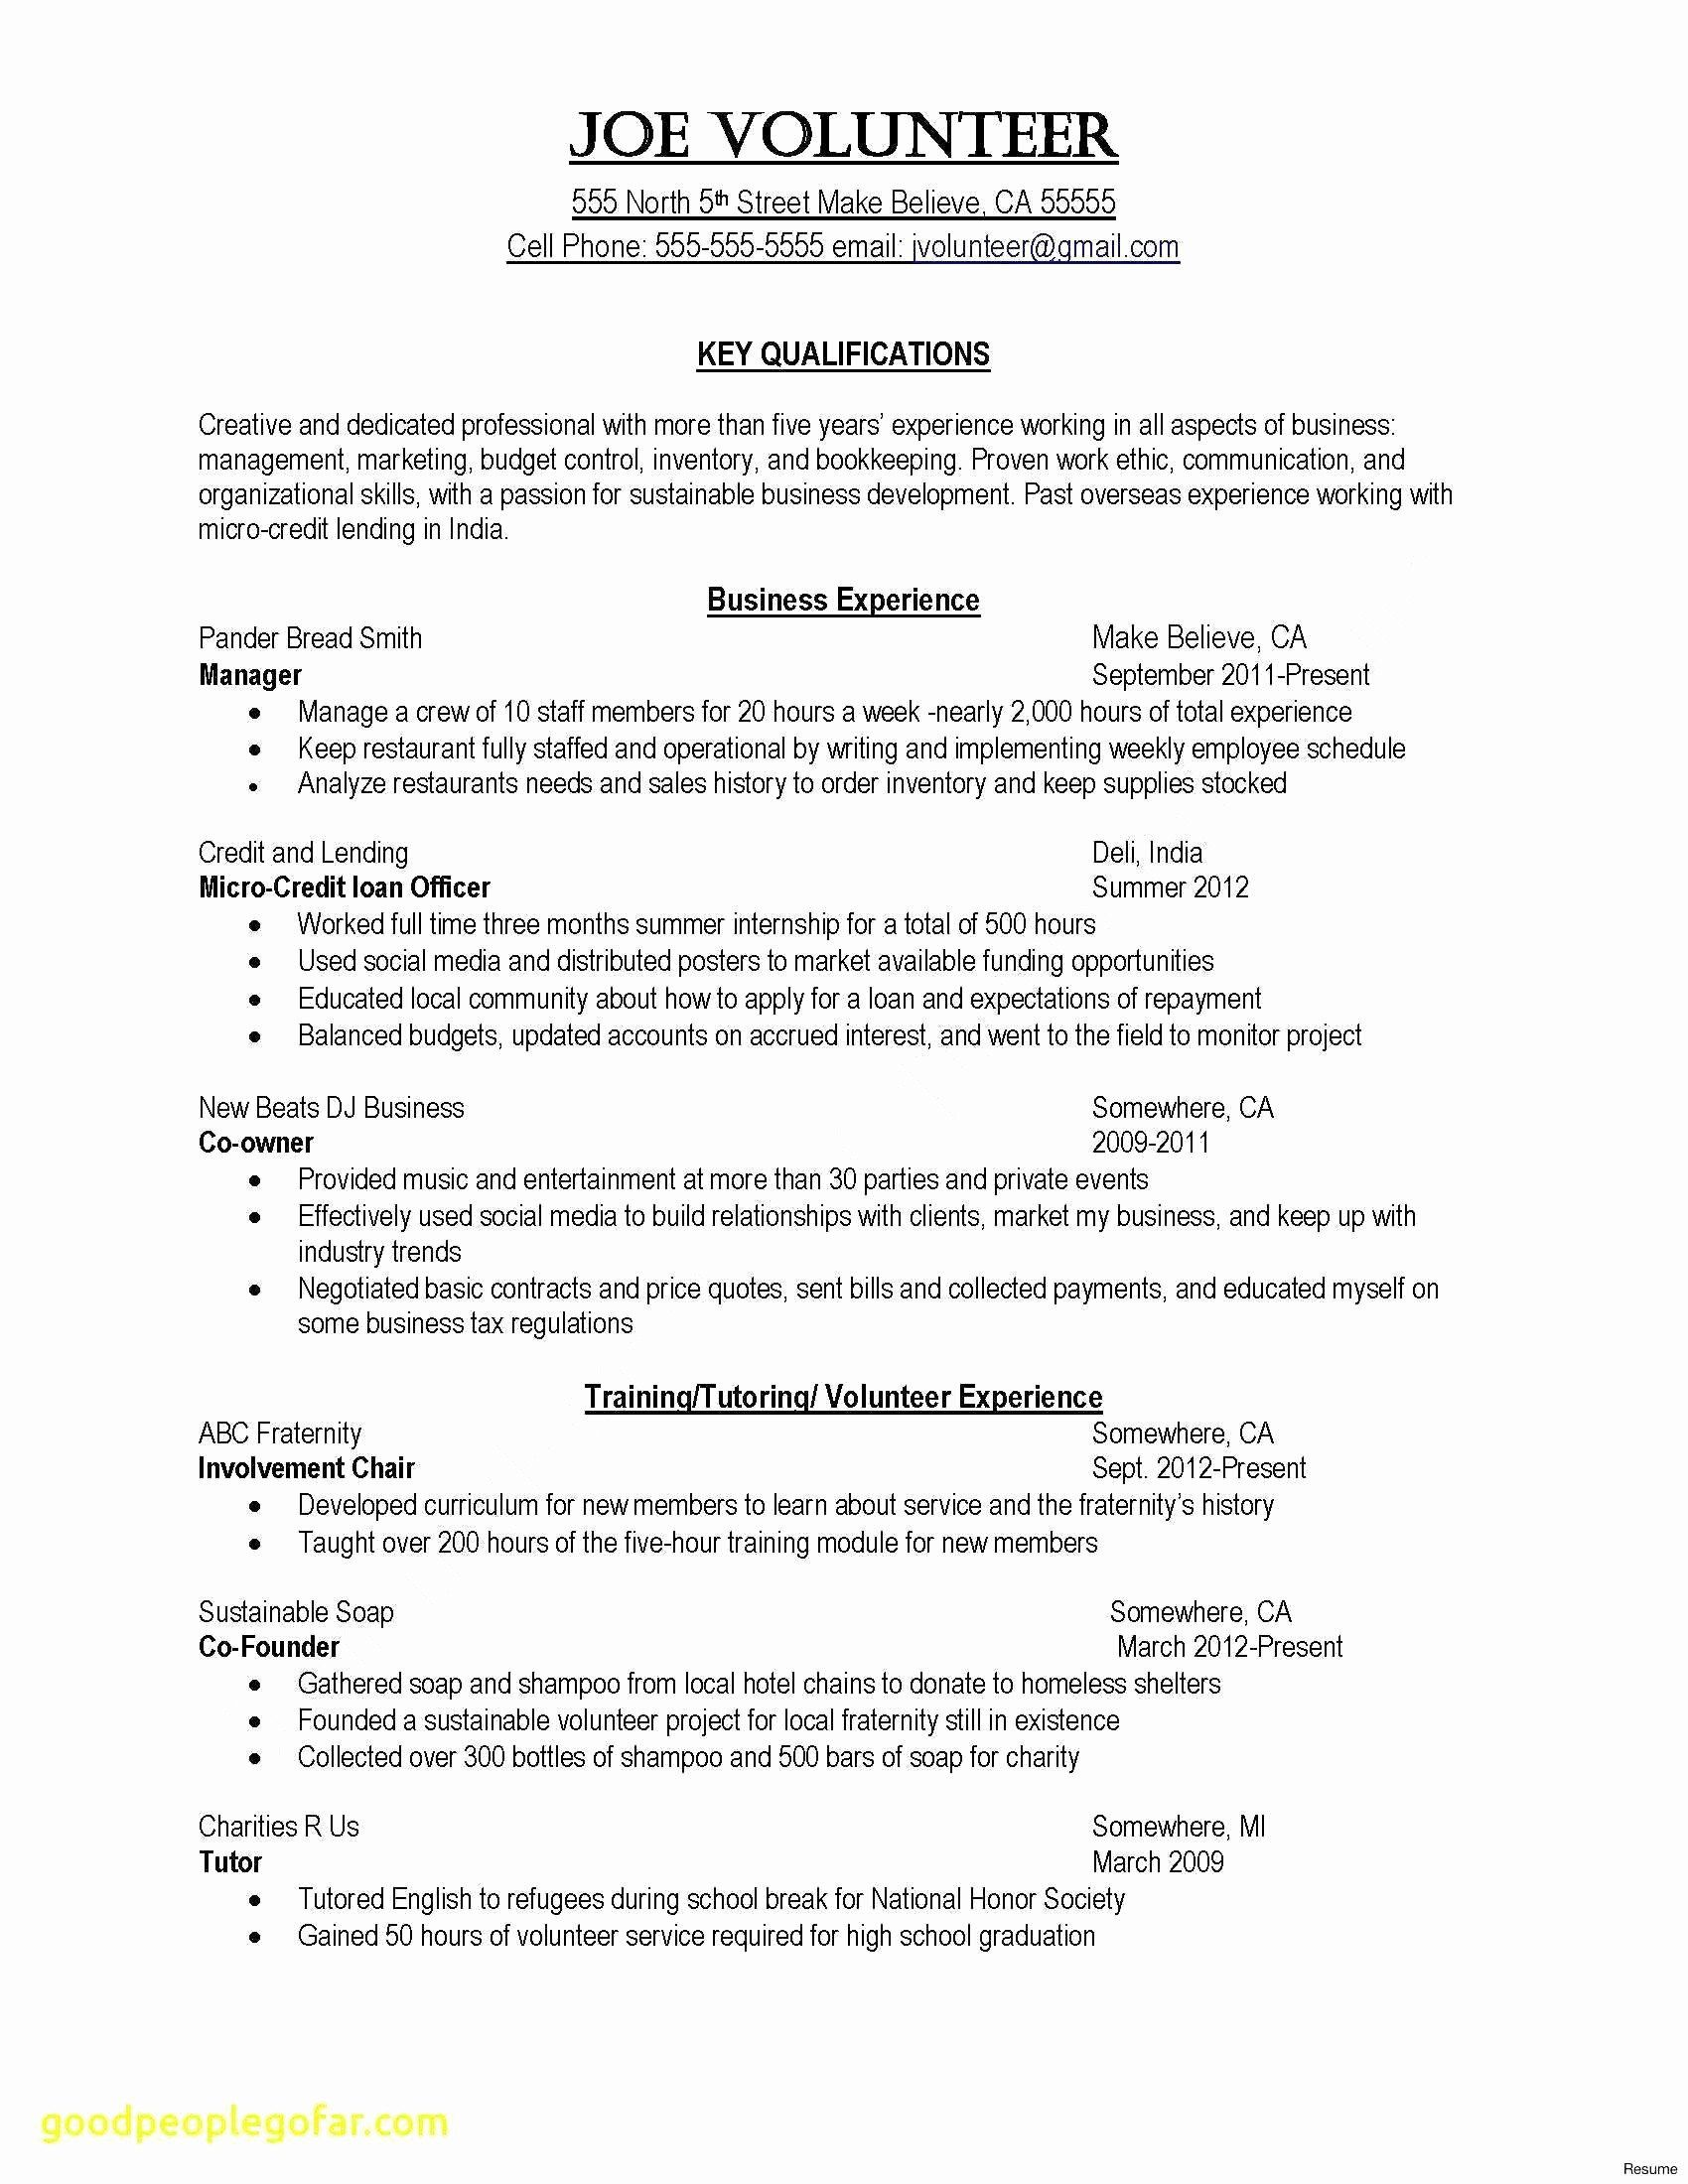 free resume builder reddit awesome background music mallerstang in project manager Resume Resume Writing Services Reddit